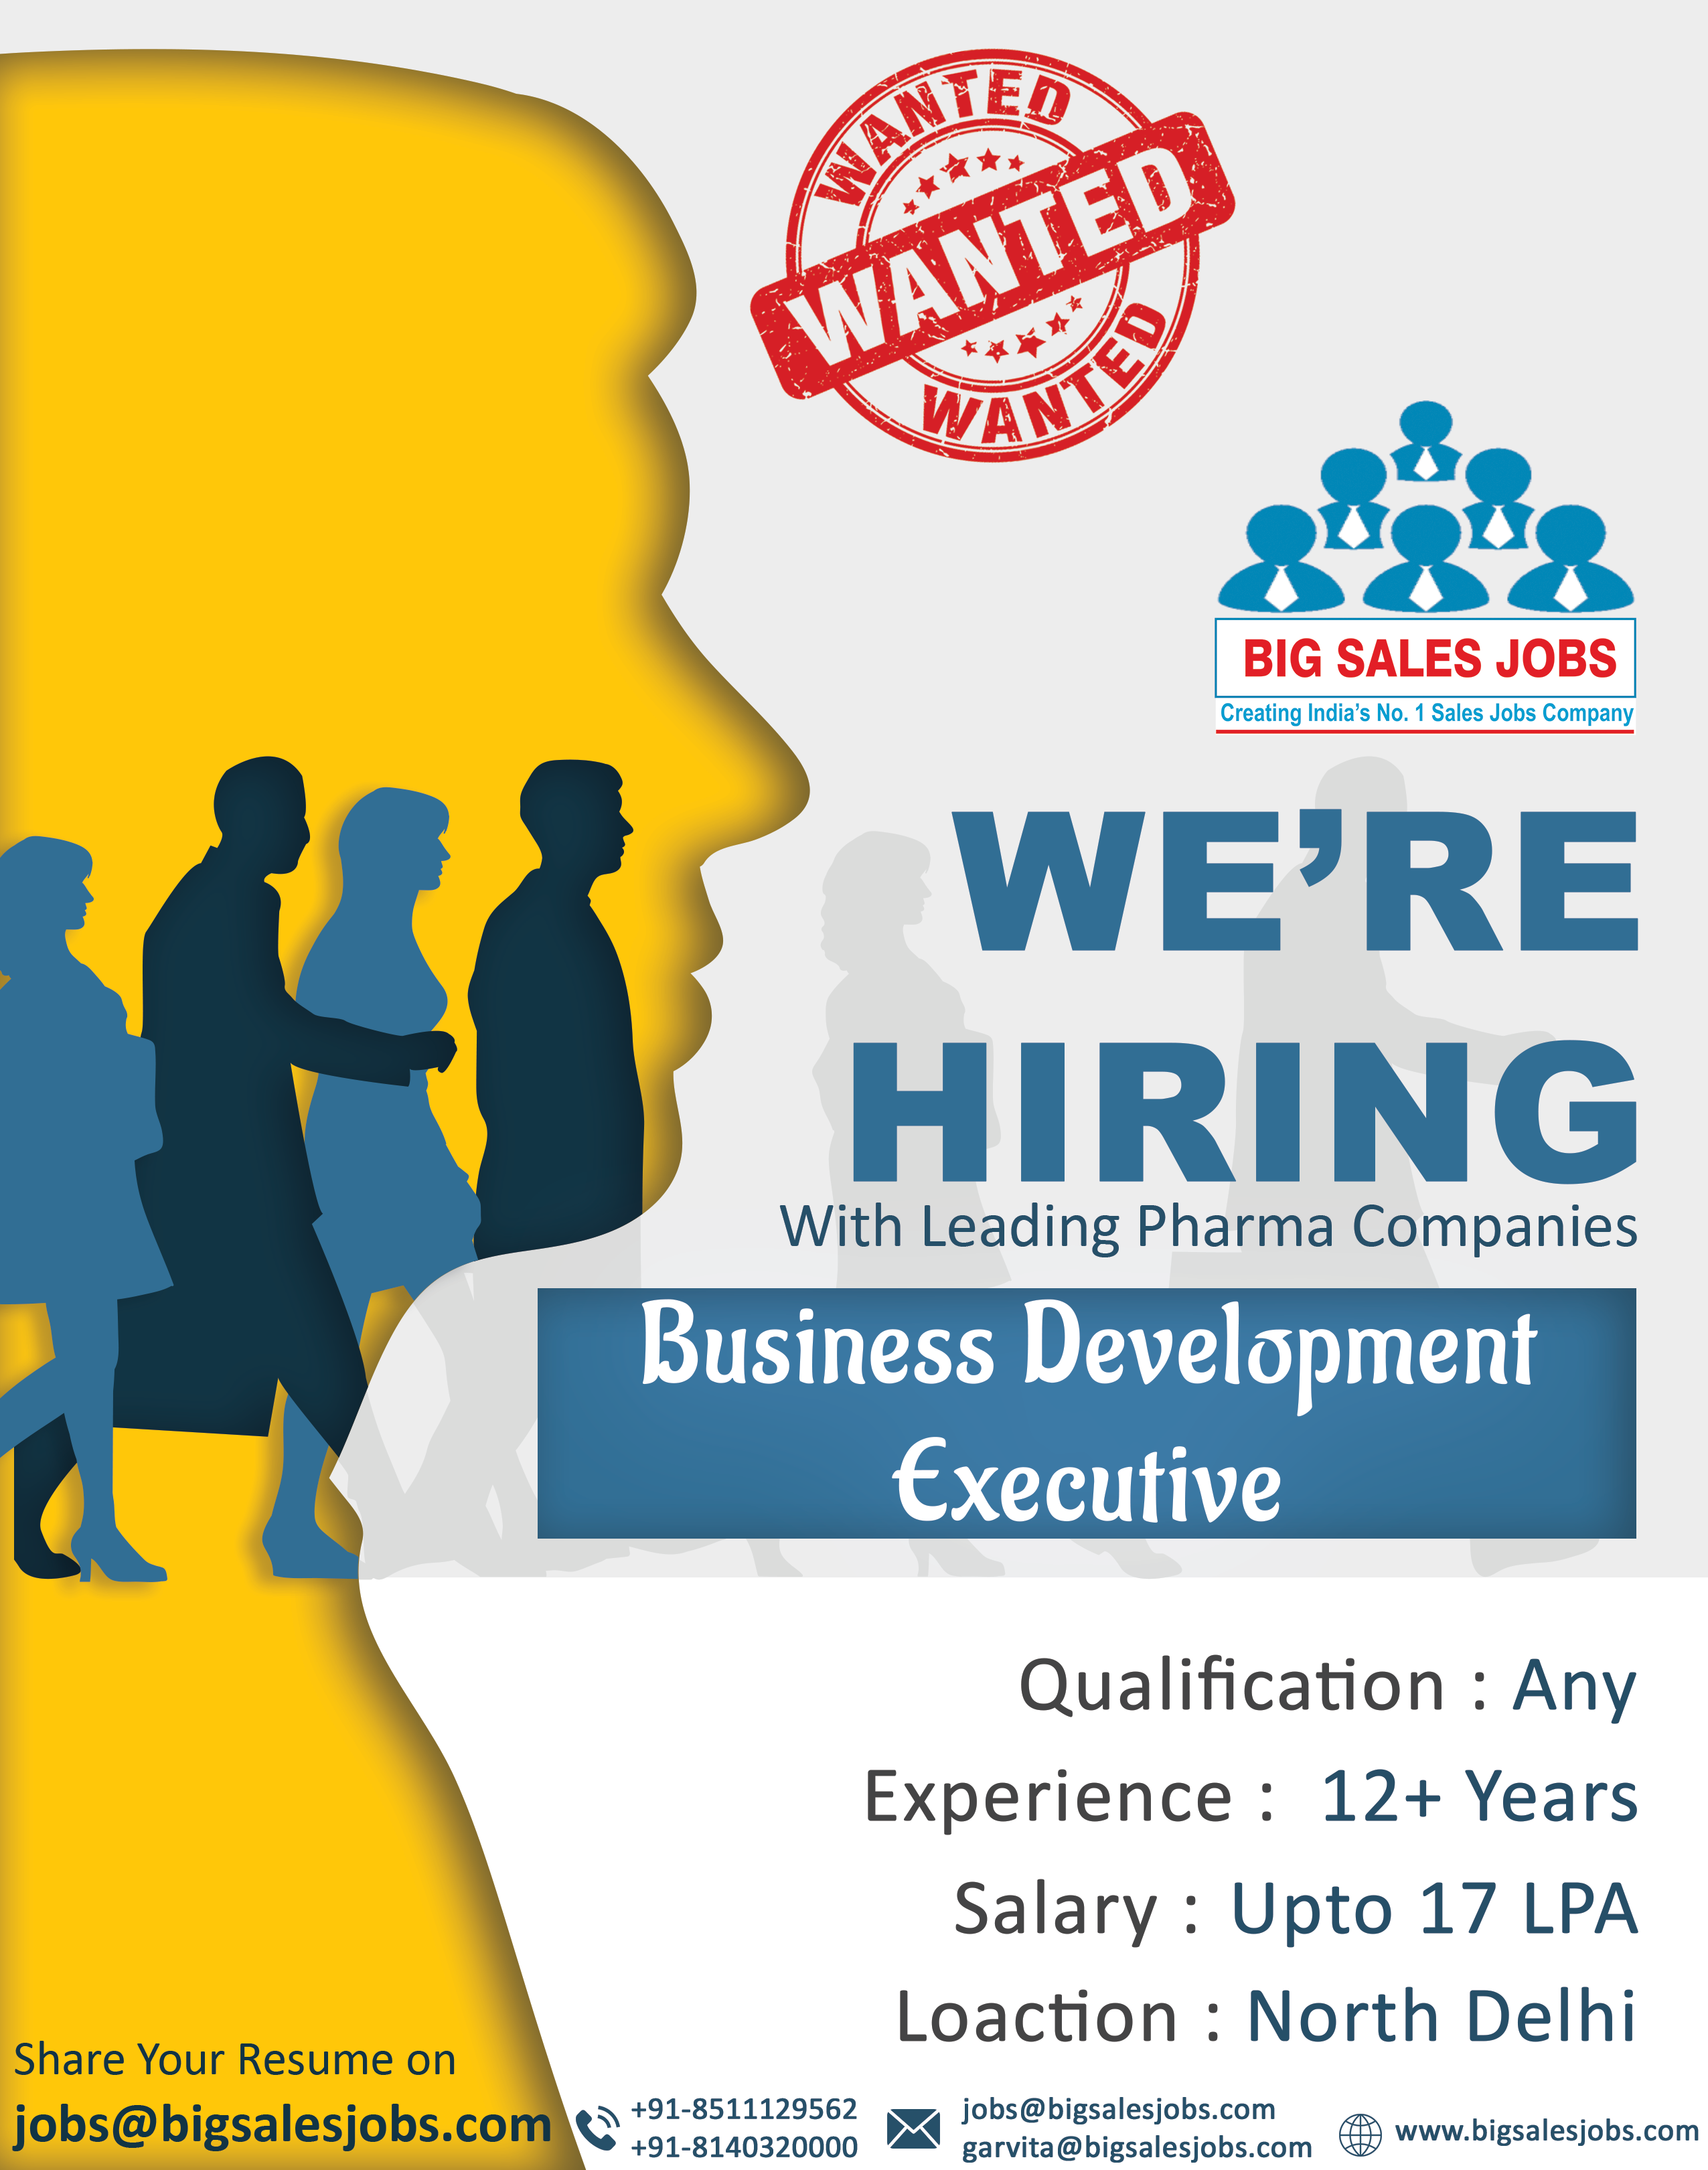 Sales Opening For Key Business Development Executive Qualification